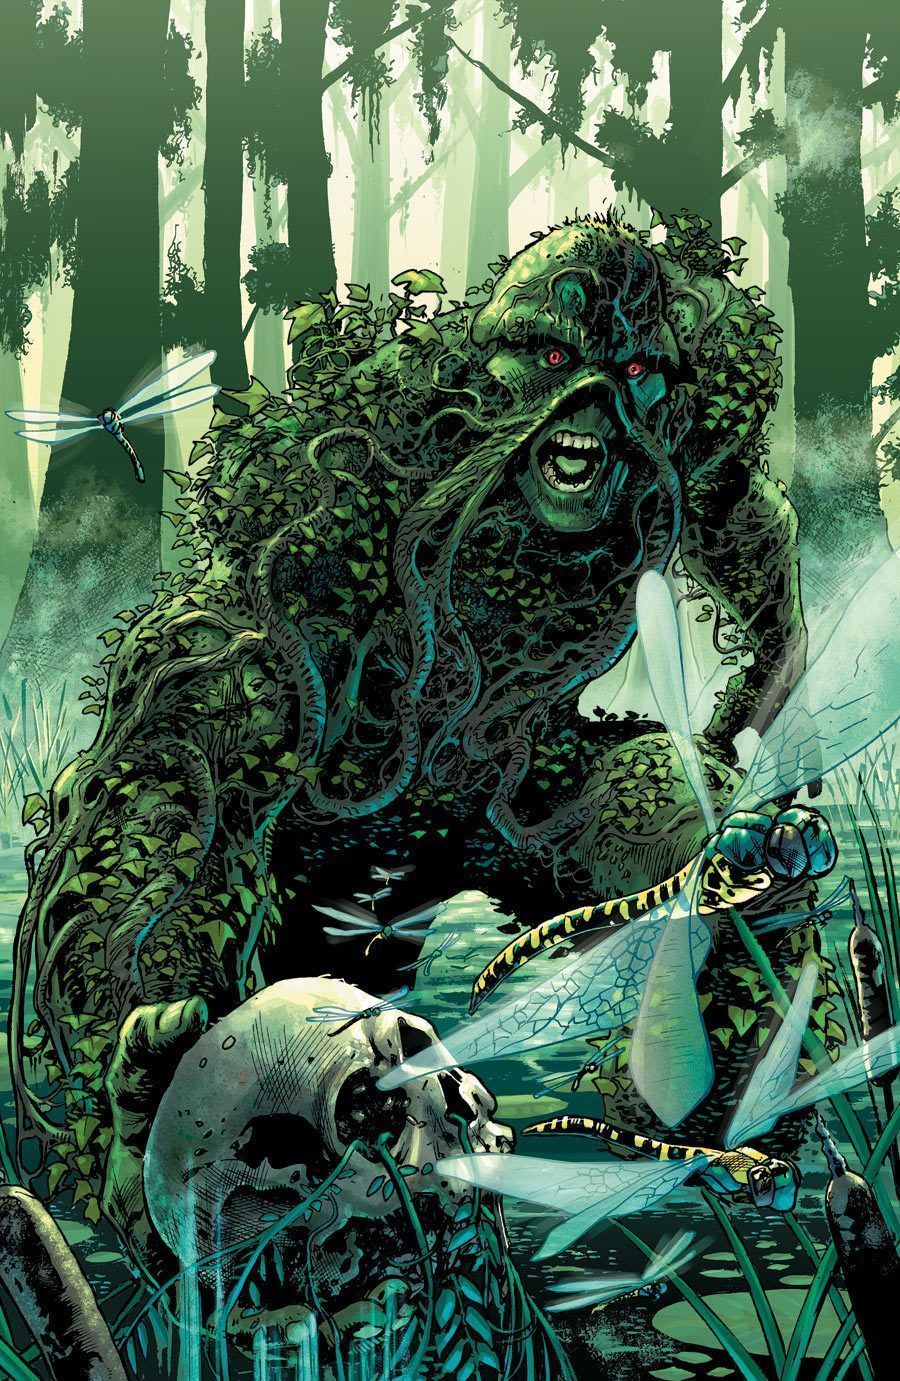 Bryan Hitch - Swamp Thing #swampthing Bryan Hitch - Swamp Thing #swampthing Bryan Hitch - Swamp Thing #swampthing Bryan Hitch - Swamp Thing #swampthing Bryan Hitch - Swamp Thing #swampthing Bryan Hitch - Swamp Thing #swampthing Bryan Hitch - Swamp Thing #swampthing Bryan Hitch - Swamp Thing #swampthing Bryan Hitch - Swamp Thing #swampthing Bryan Hitch - Swamp Thing #swampthing Bryan Hitch - Swamp Thing #swampthing Bryan Hitch - Swamp Thing #swampthing Bryan Hitch - Swamp Thing #swampthing Bryan #swampthing